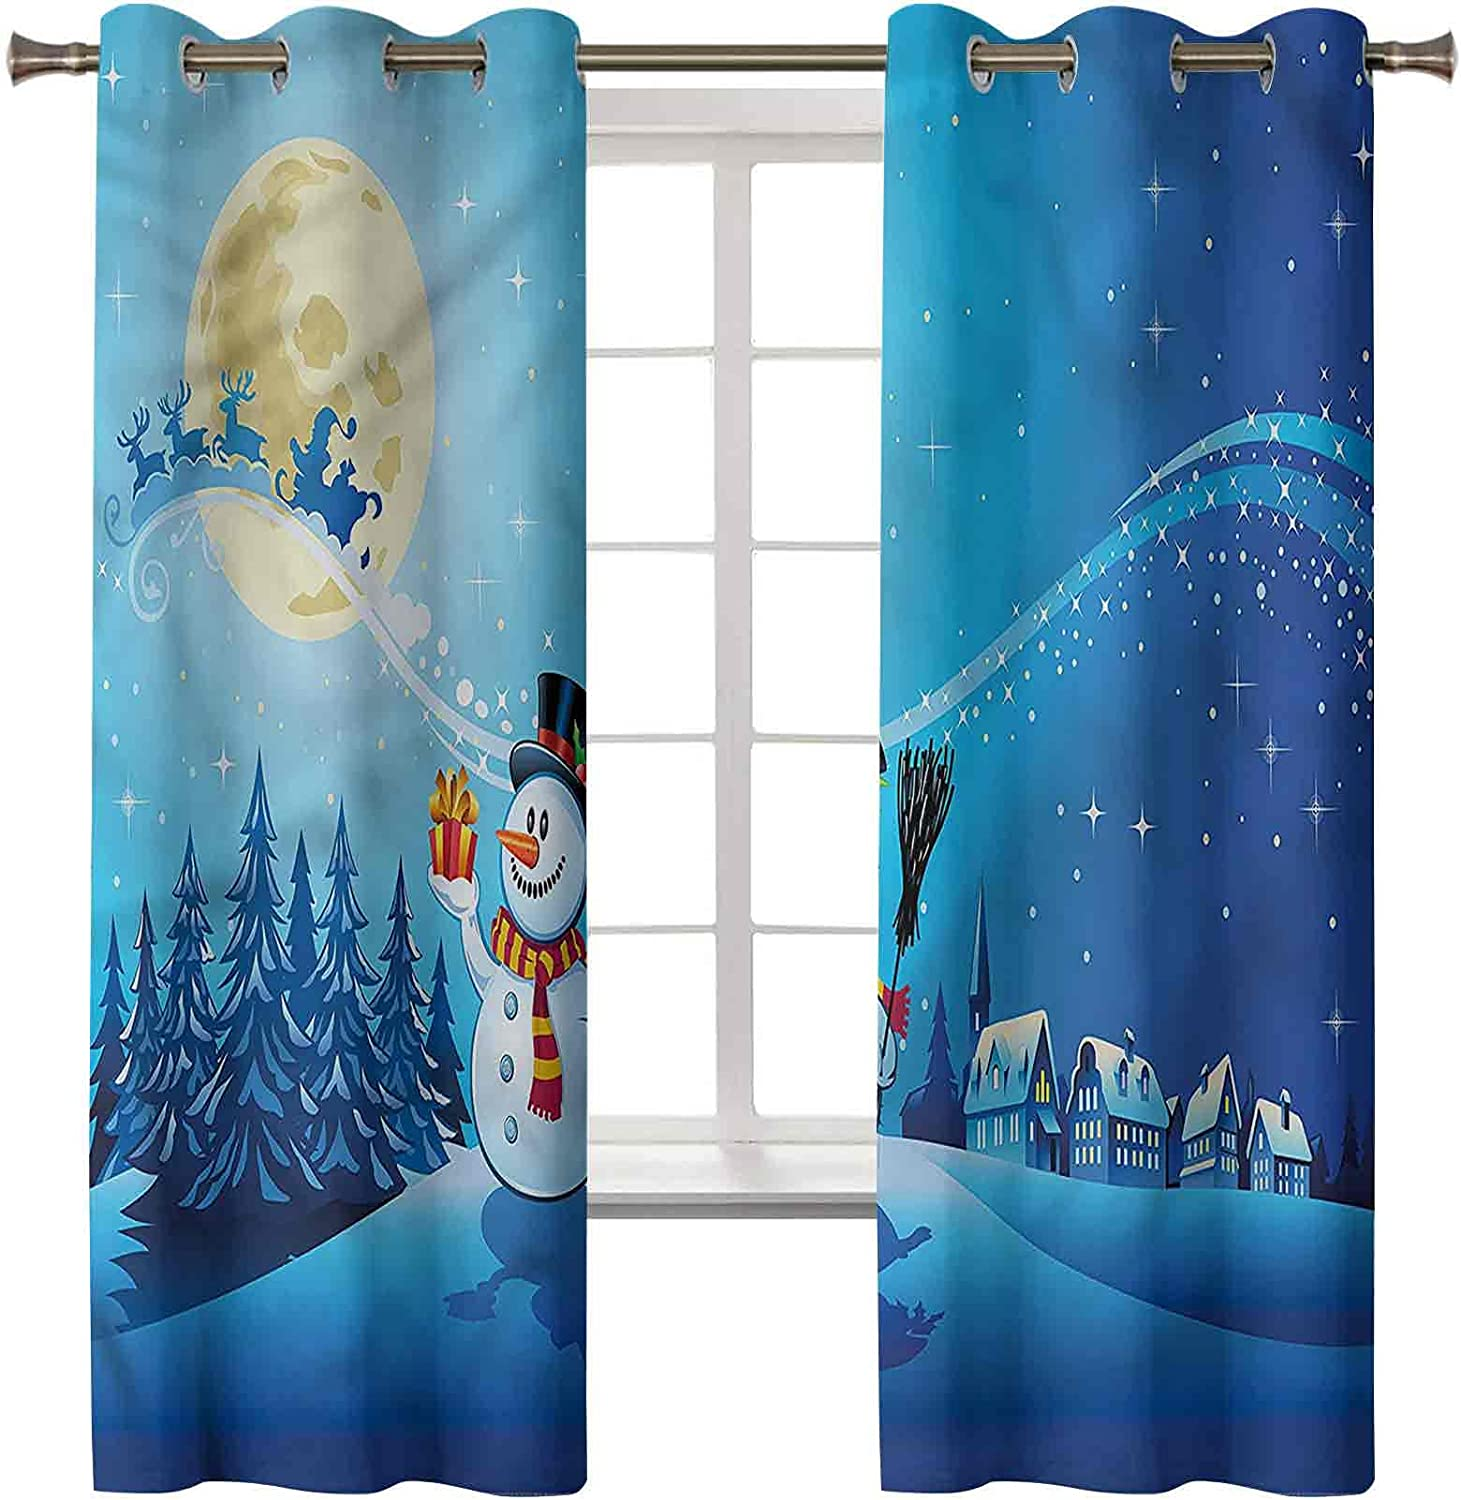 Christmas Curtains for Bedroom Set of 2 Direct store x Panels 84 trend rank Inch 42 Far